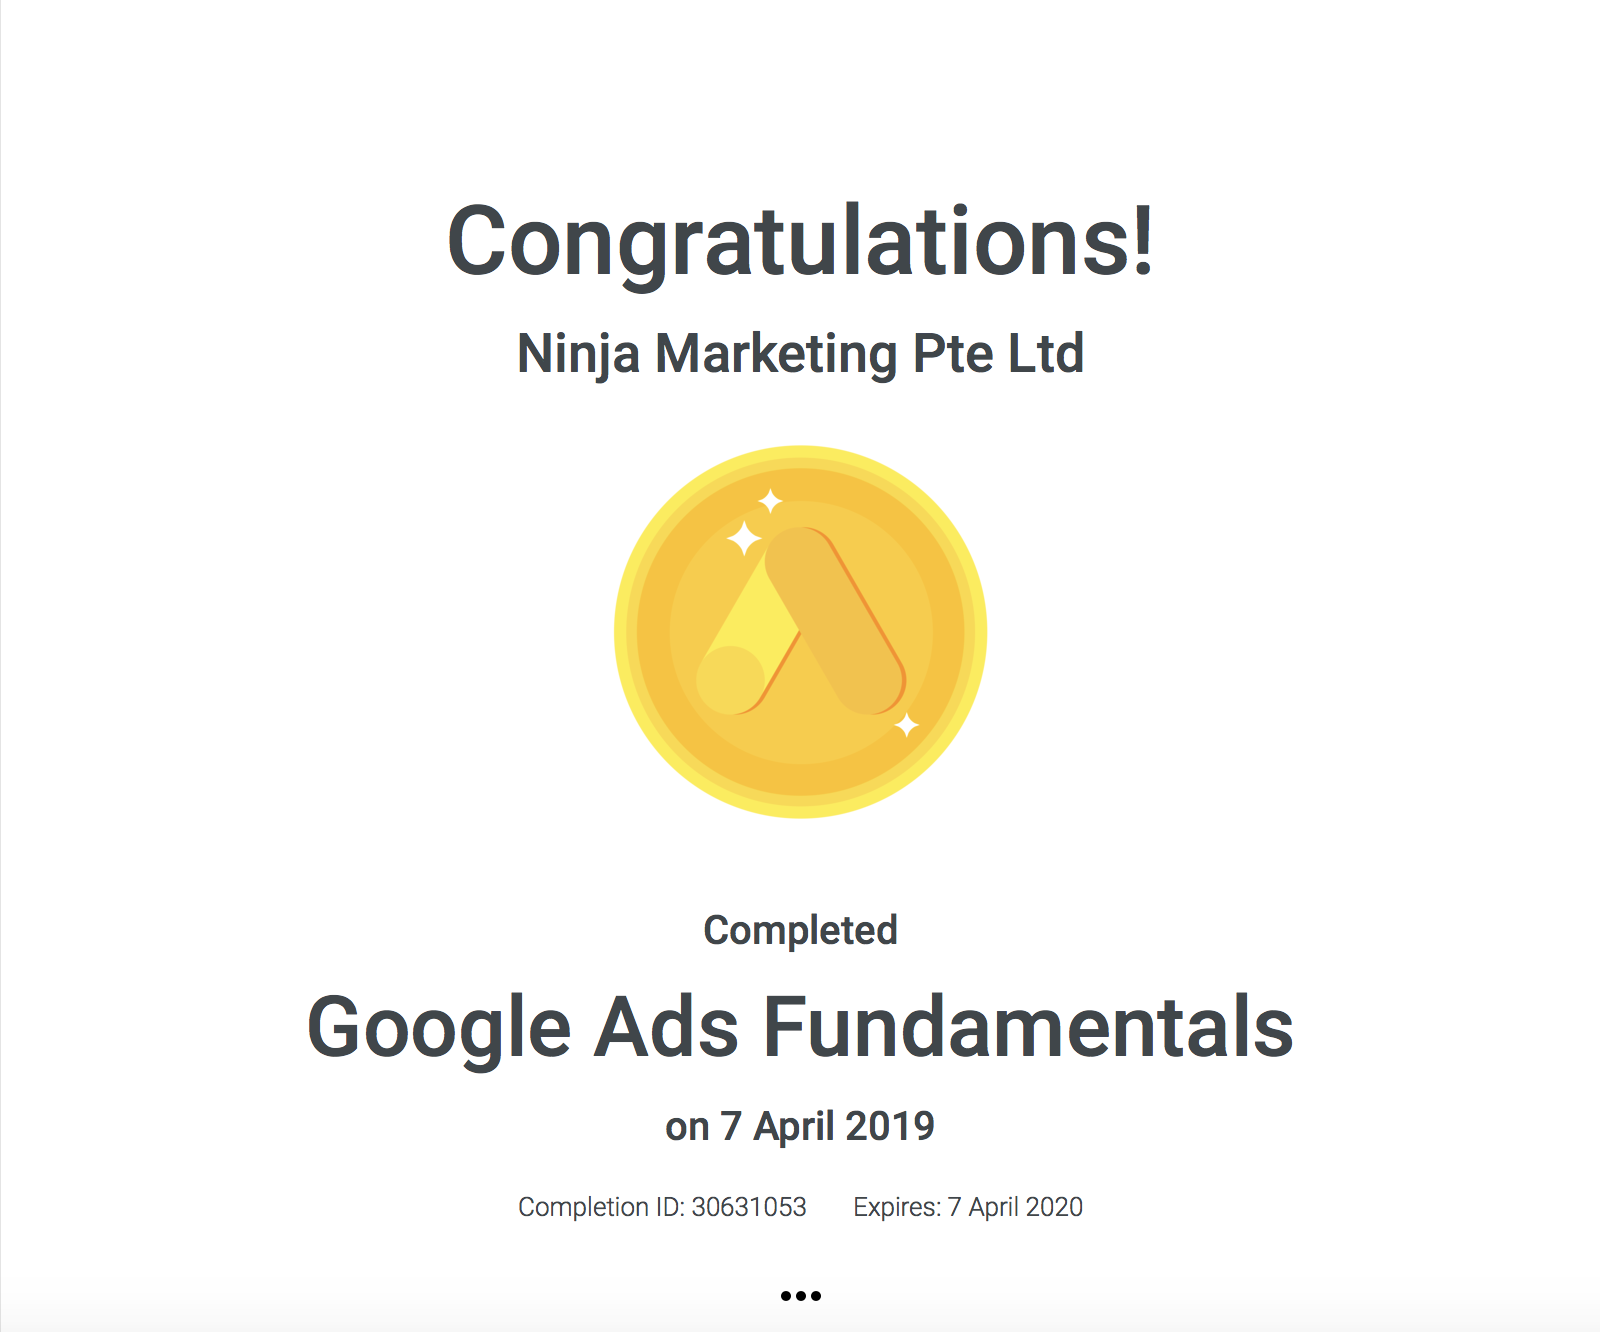 Ninja Marketing - Google Ads Fundamental Achievement Award